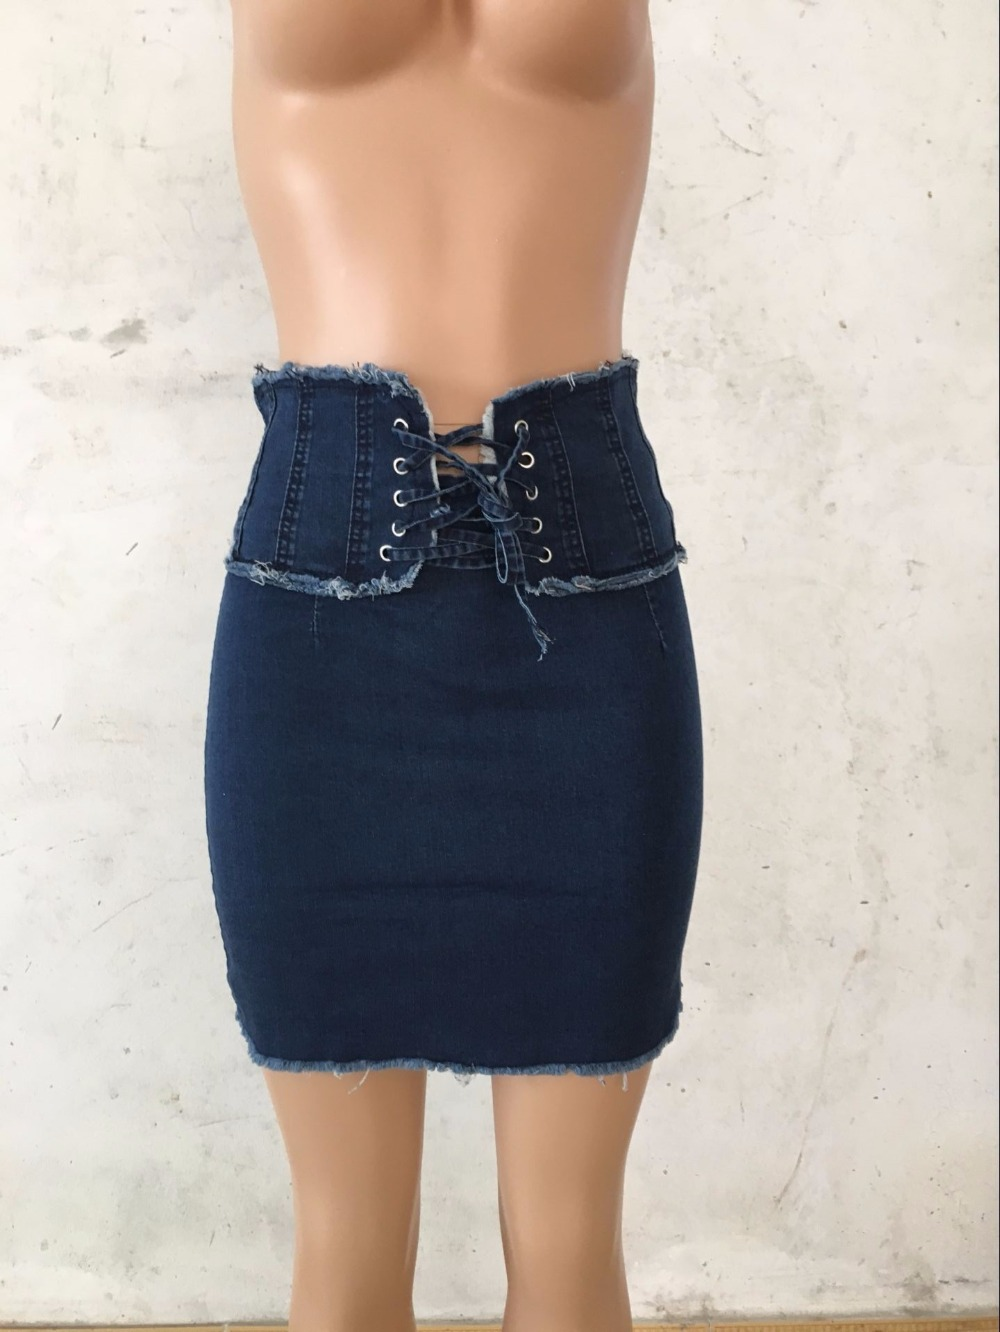 2019 New Sexy Bandages Women Denim Mini Skirts High Waist Lace Up Jean Summer Pencil Skirts in Skirts from Women 39 s Clothing